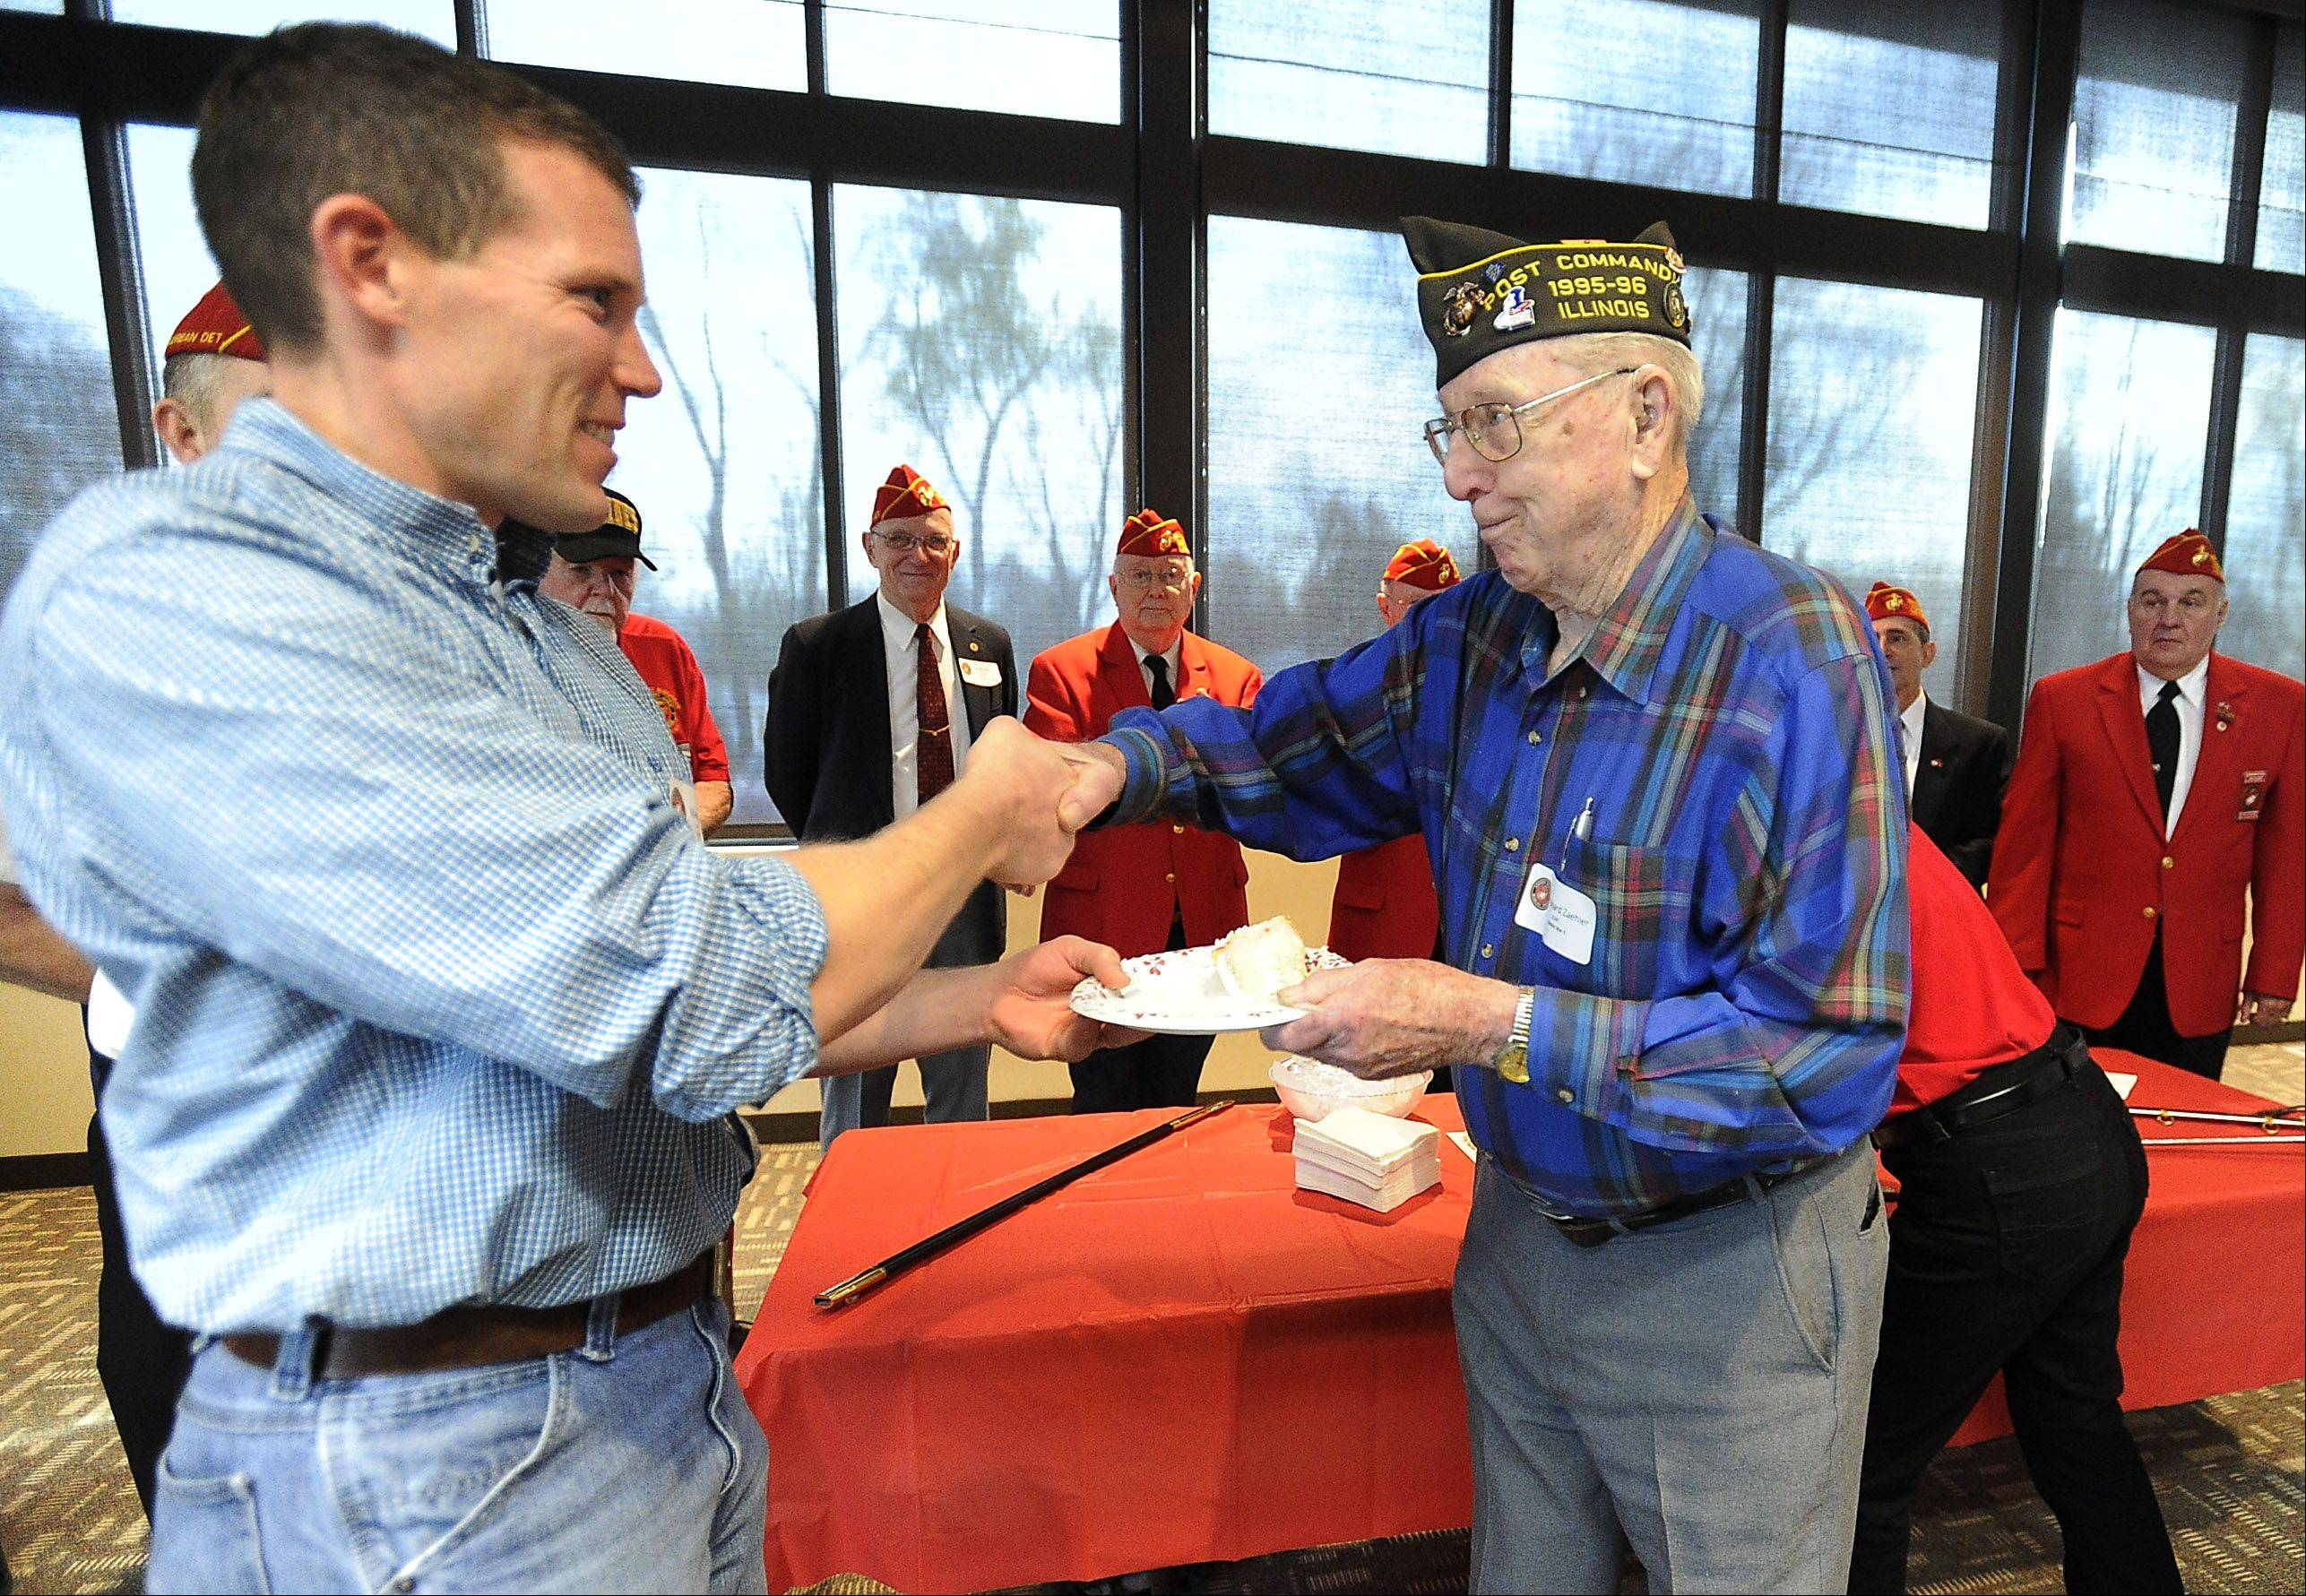 Pfc. Marine Leonard Zaehler, 93, who served in World War II, presents a piece of cake to the youngest Marine, Mike Kubas of Grayslake, who is a 3rd generation Marine at the Veterans Day celebration held Saturday at St. Peter Lutheran Church in Arlington Heights.